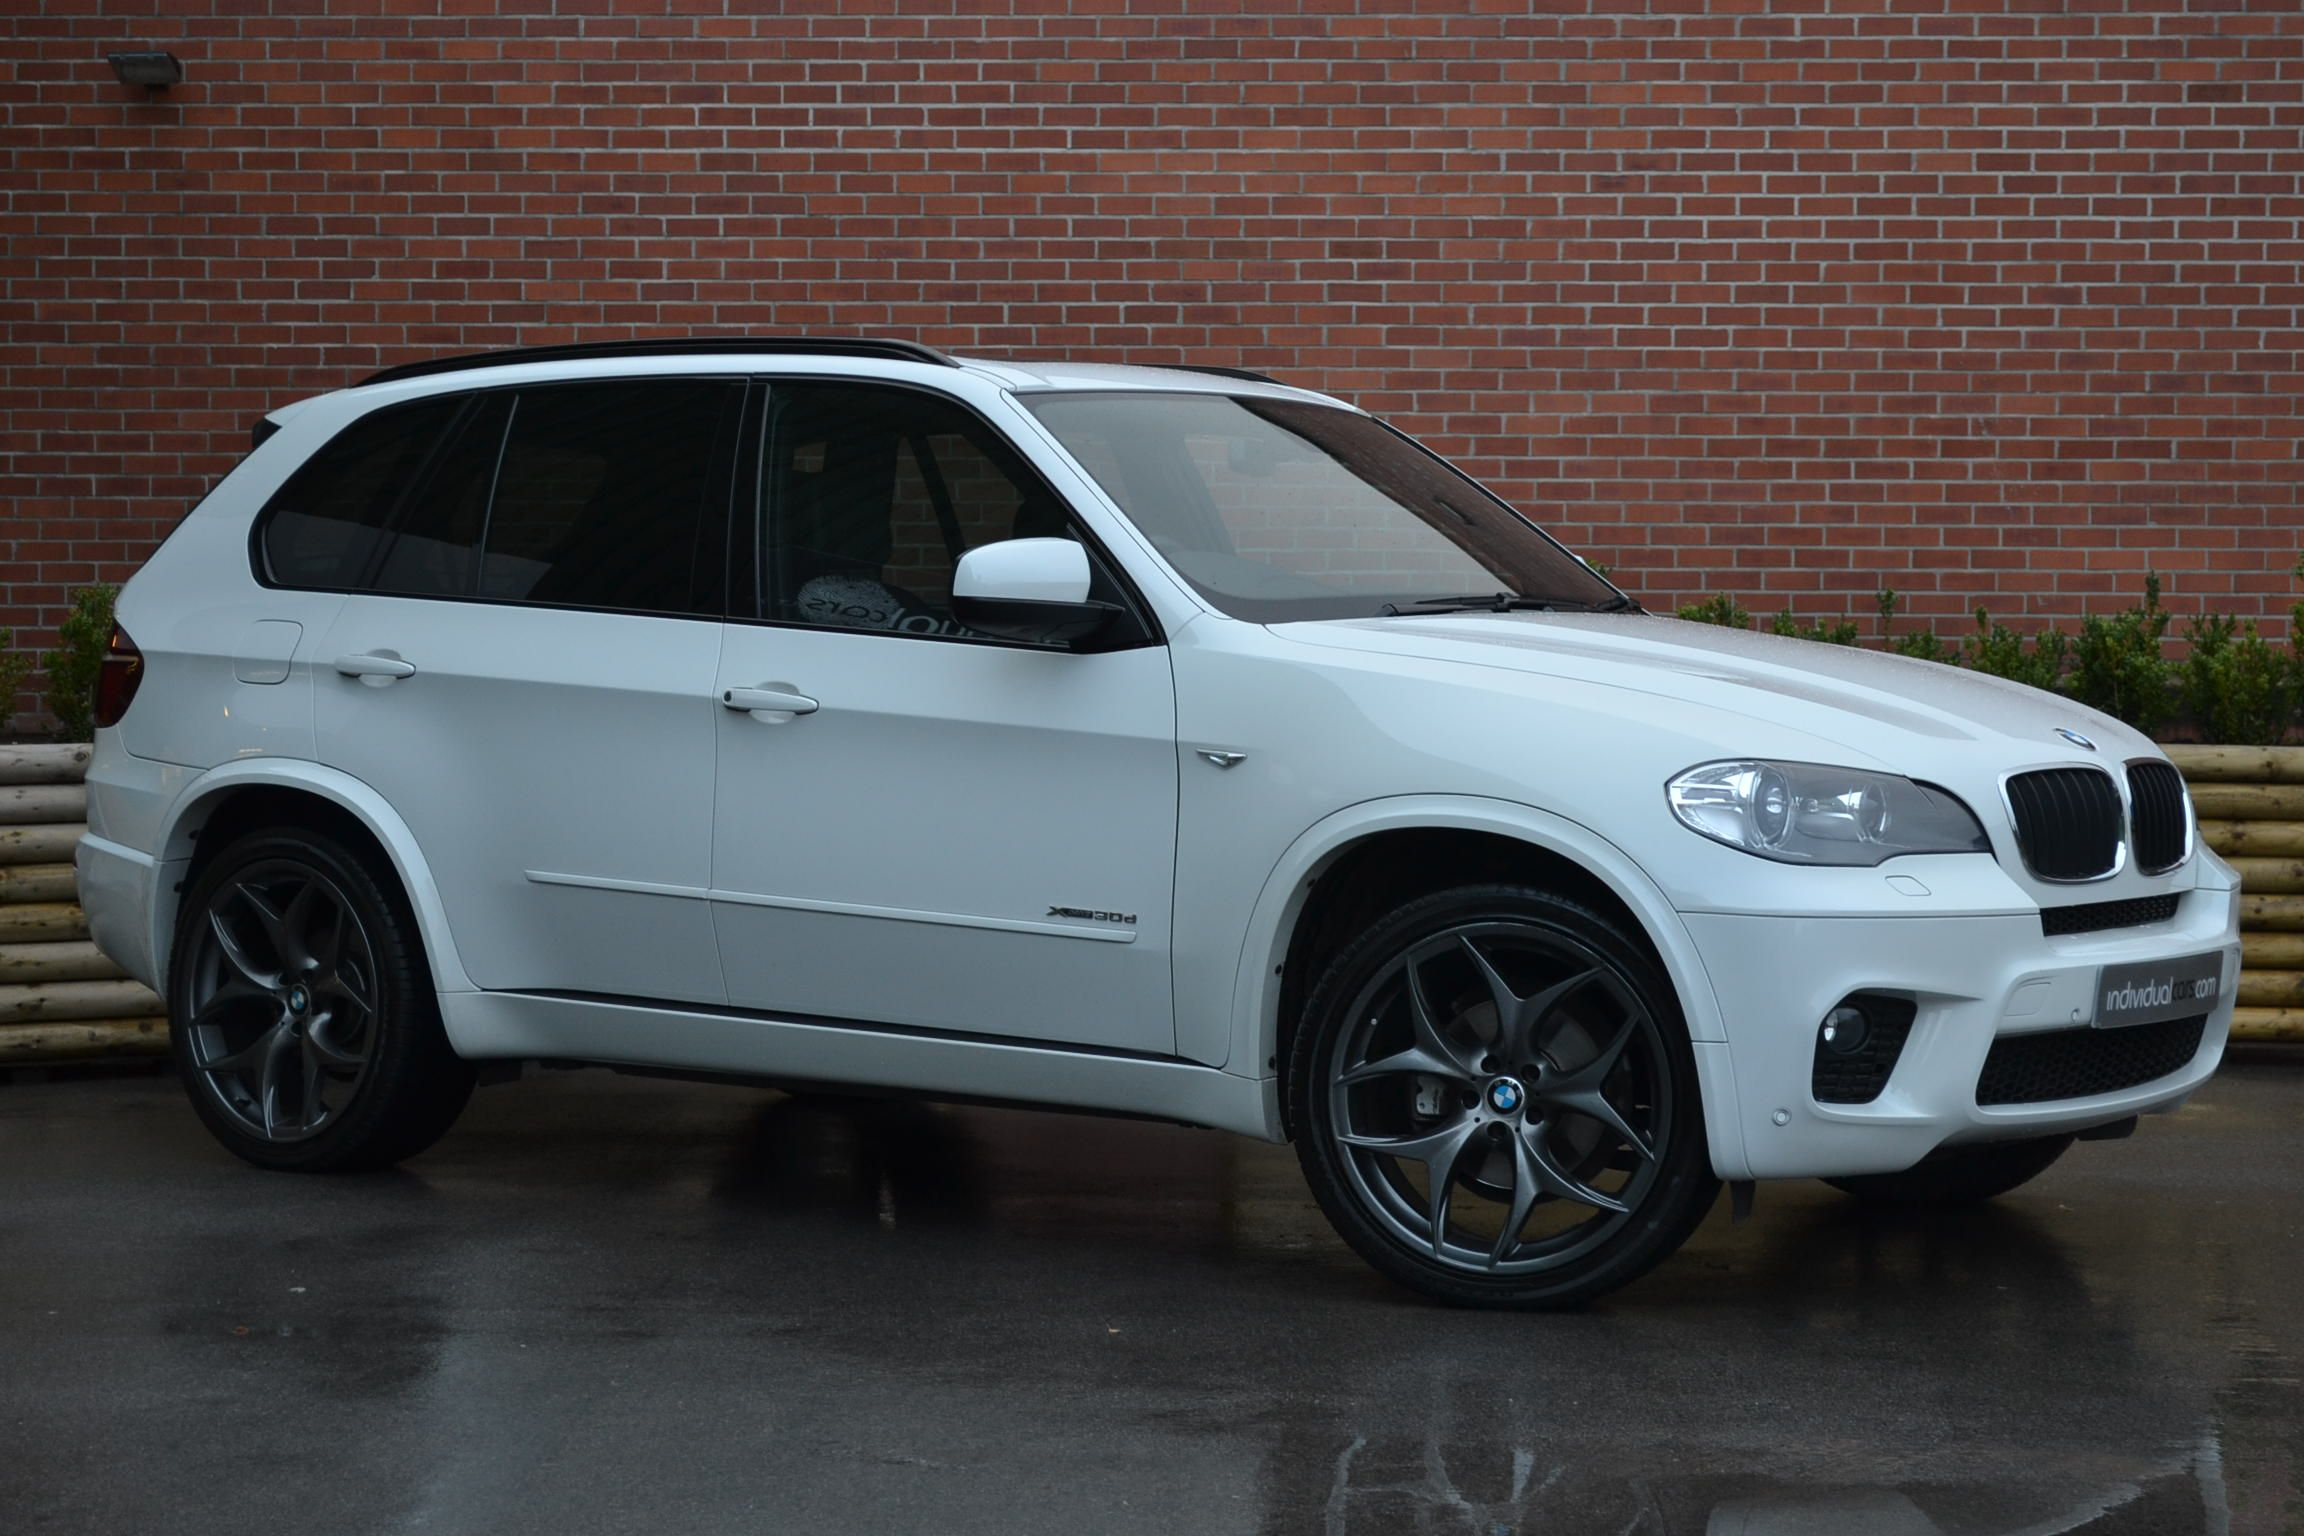 Alpine White Bmw X5 Now In Stock Low Millage And Huge Spec Click Here For More Information Http Www Individualcars Com Cars 182 Bmw X5 Bmw X5 E70 Bmw